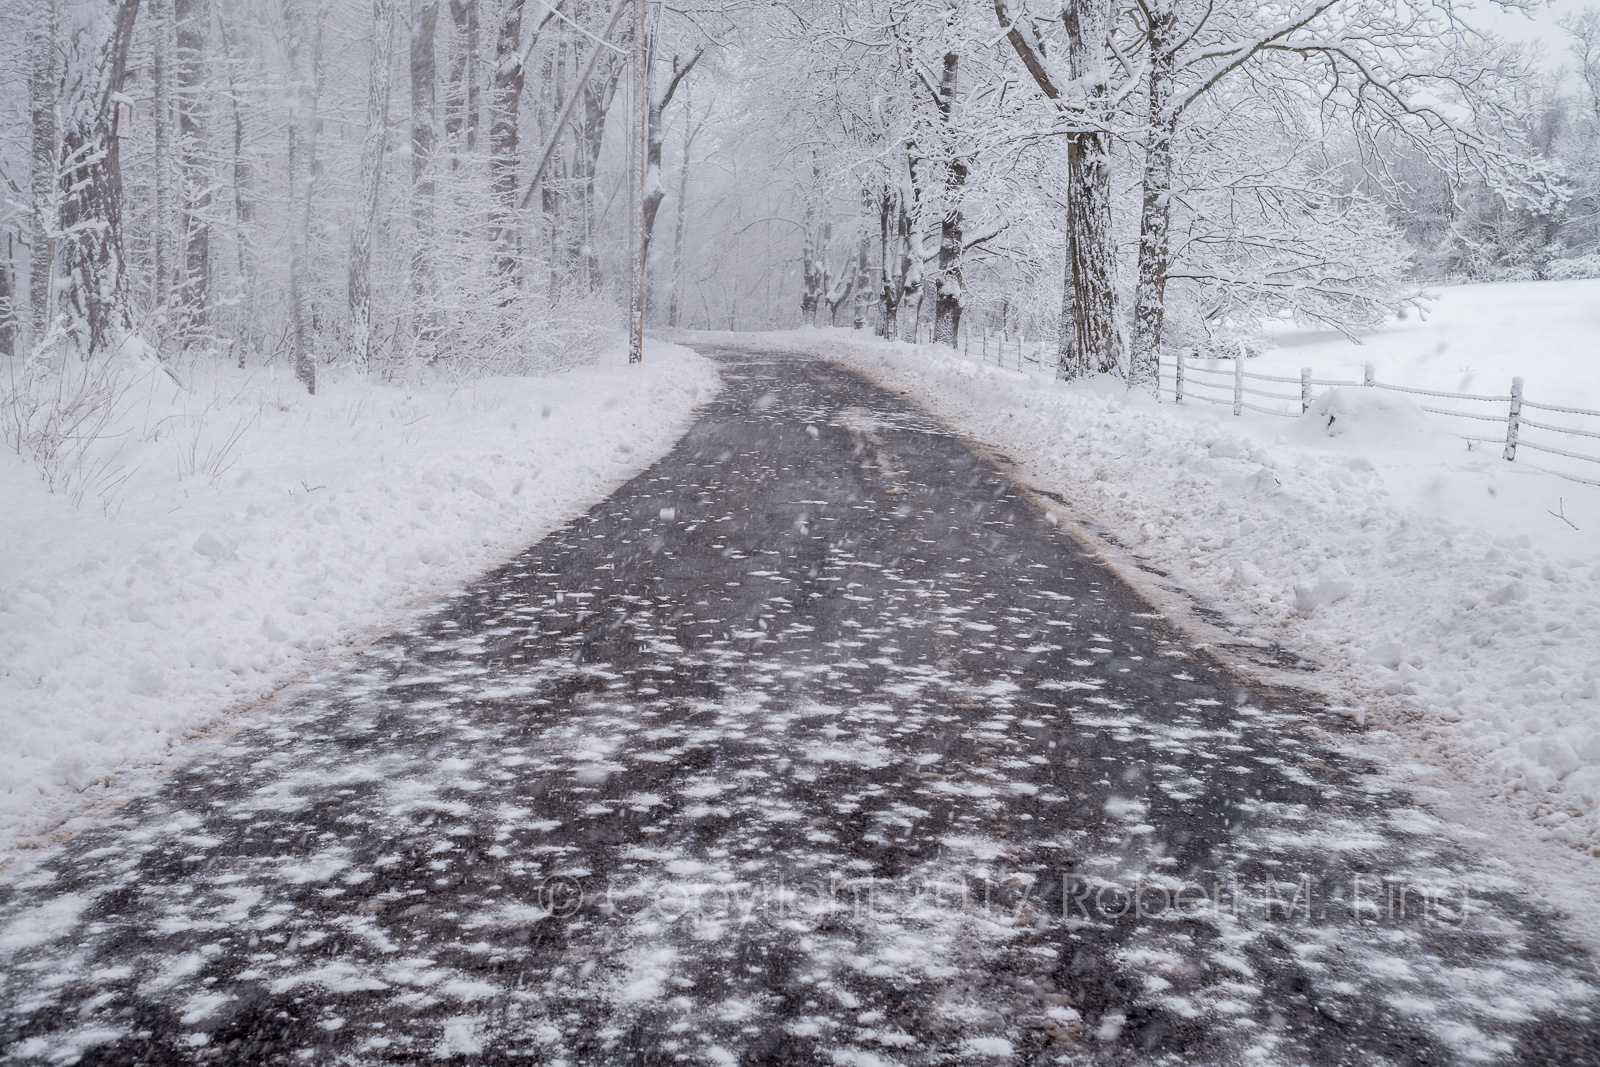 I called this Falling Snow as I stood in the middle of the road a wind gust blew the snow you see on the road on top of me!